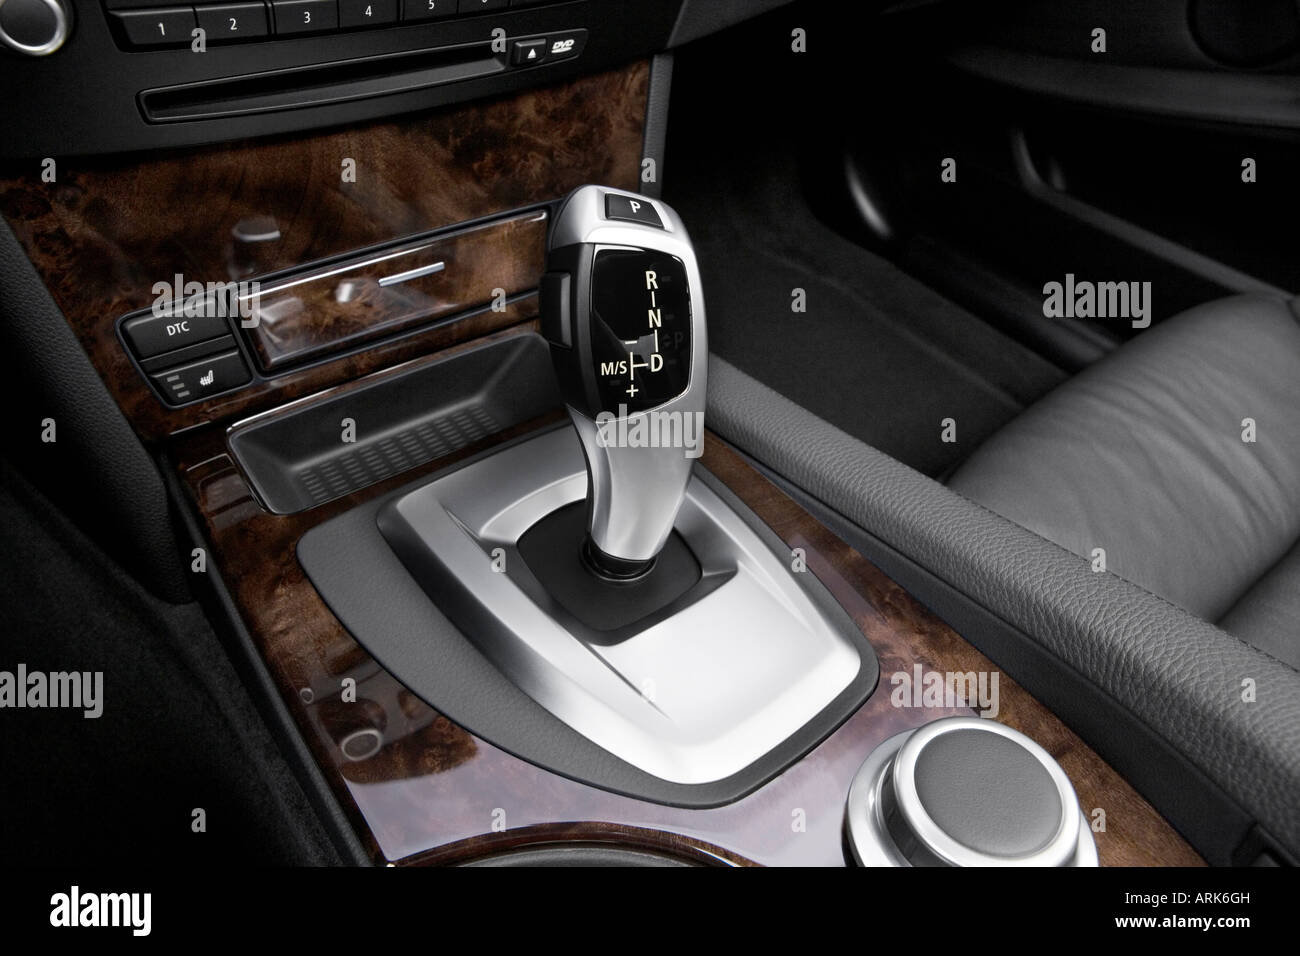 2008 Bmw 5 Series 550i In Gray Gear Shifter Center Console Stock Photo Royalty Free Image